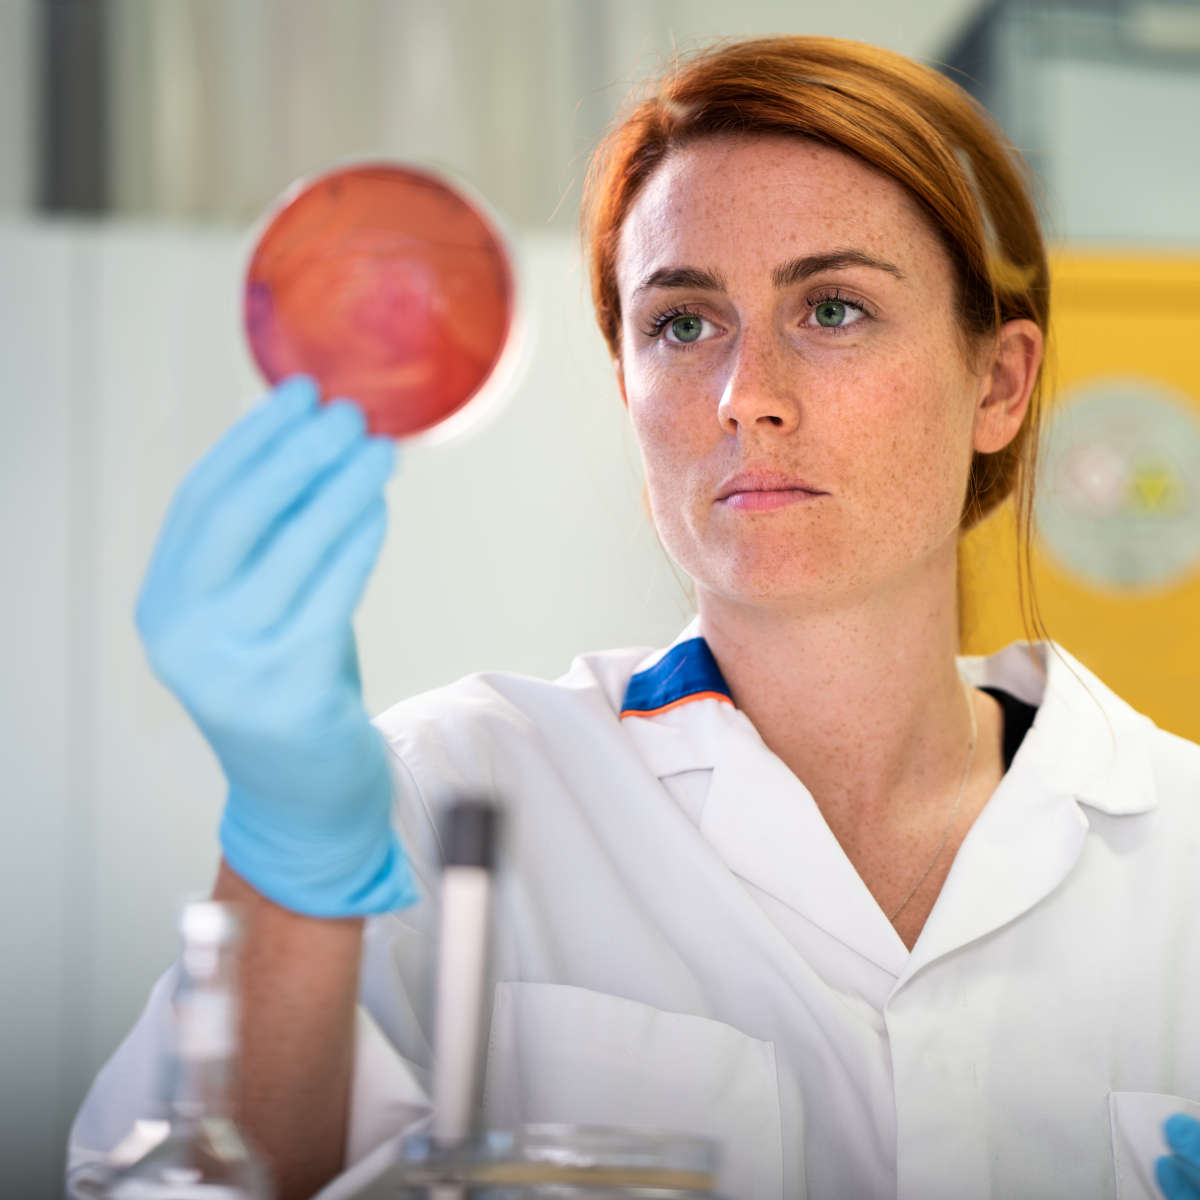 A woman observing a petri dish